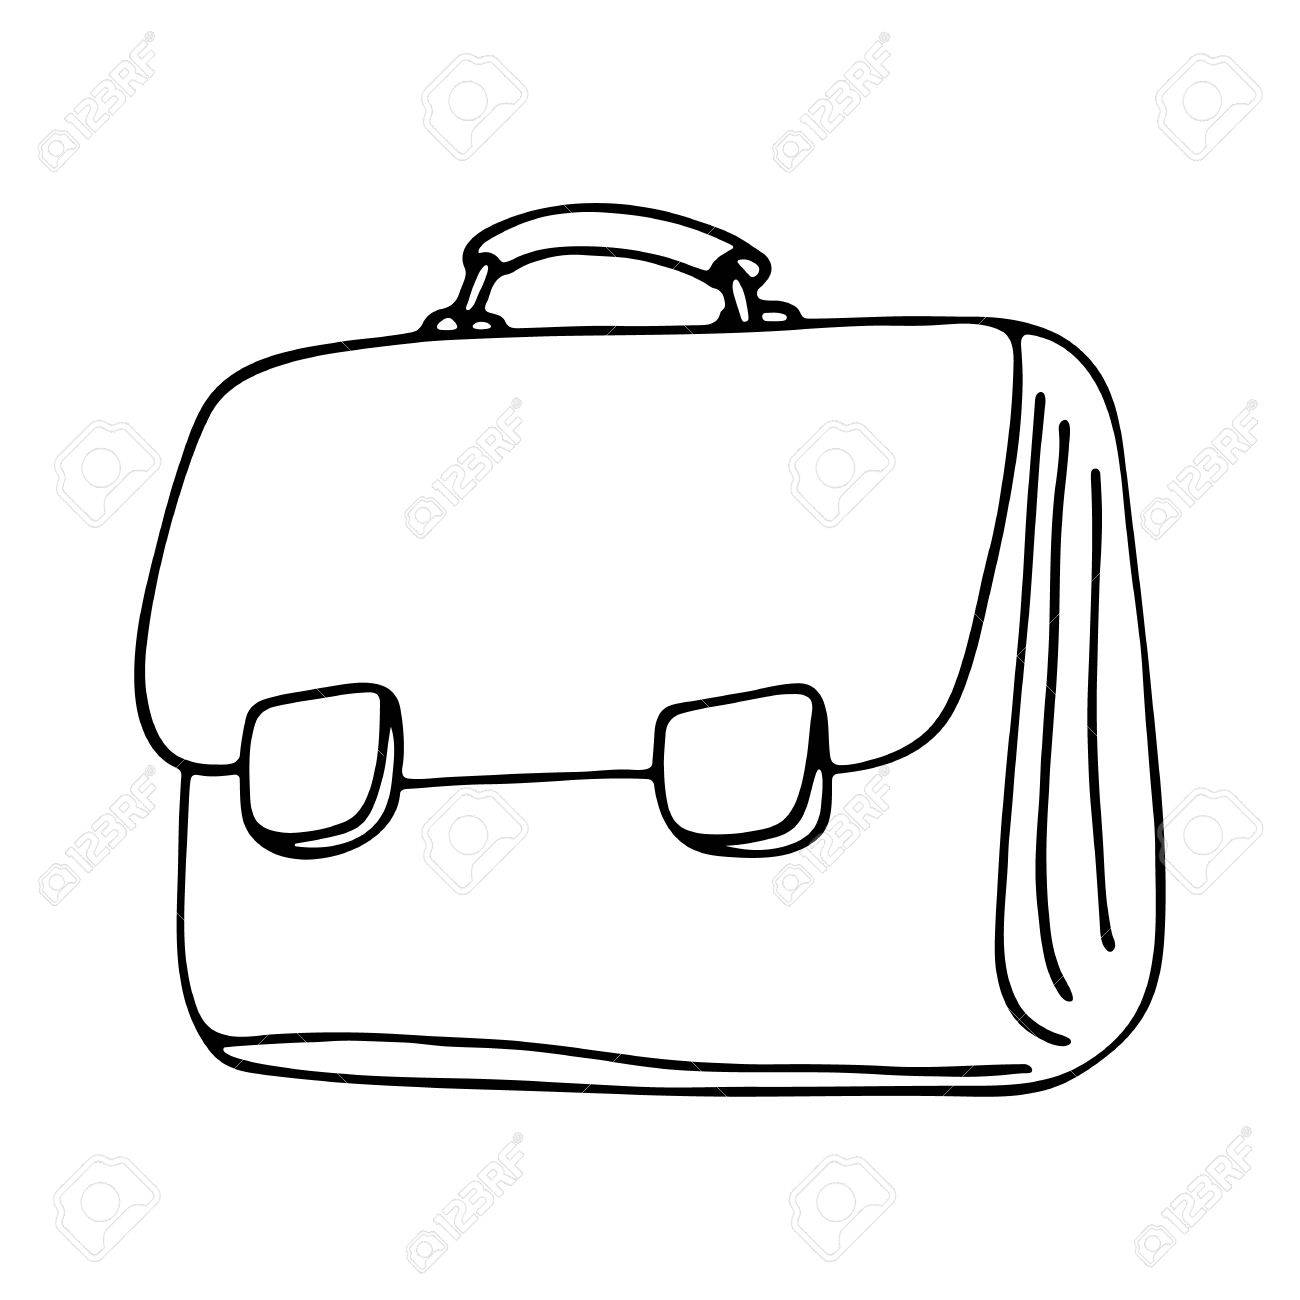 School bag isolated on white background. - 61531050